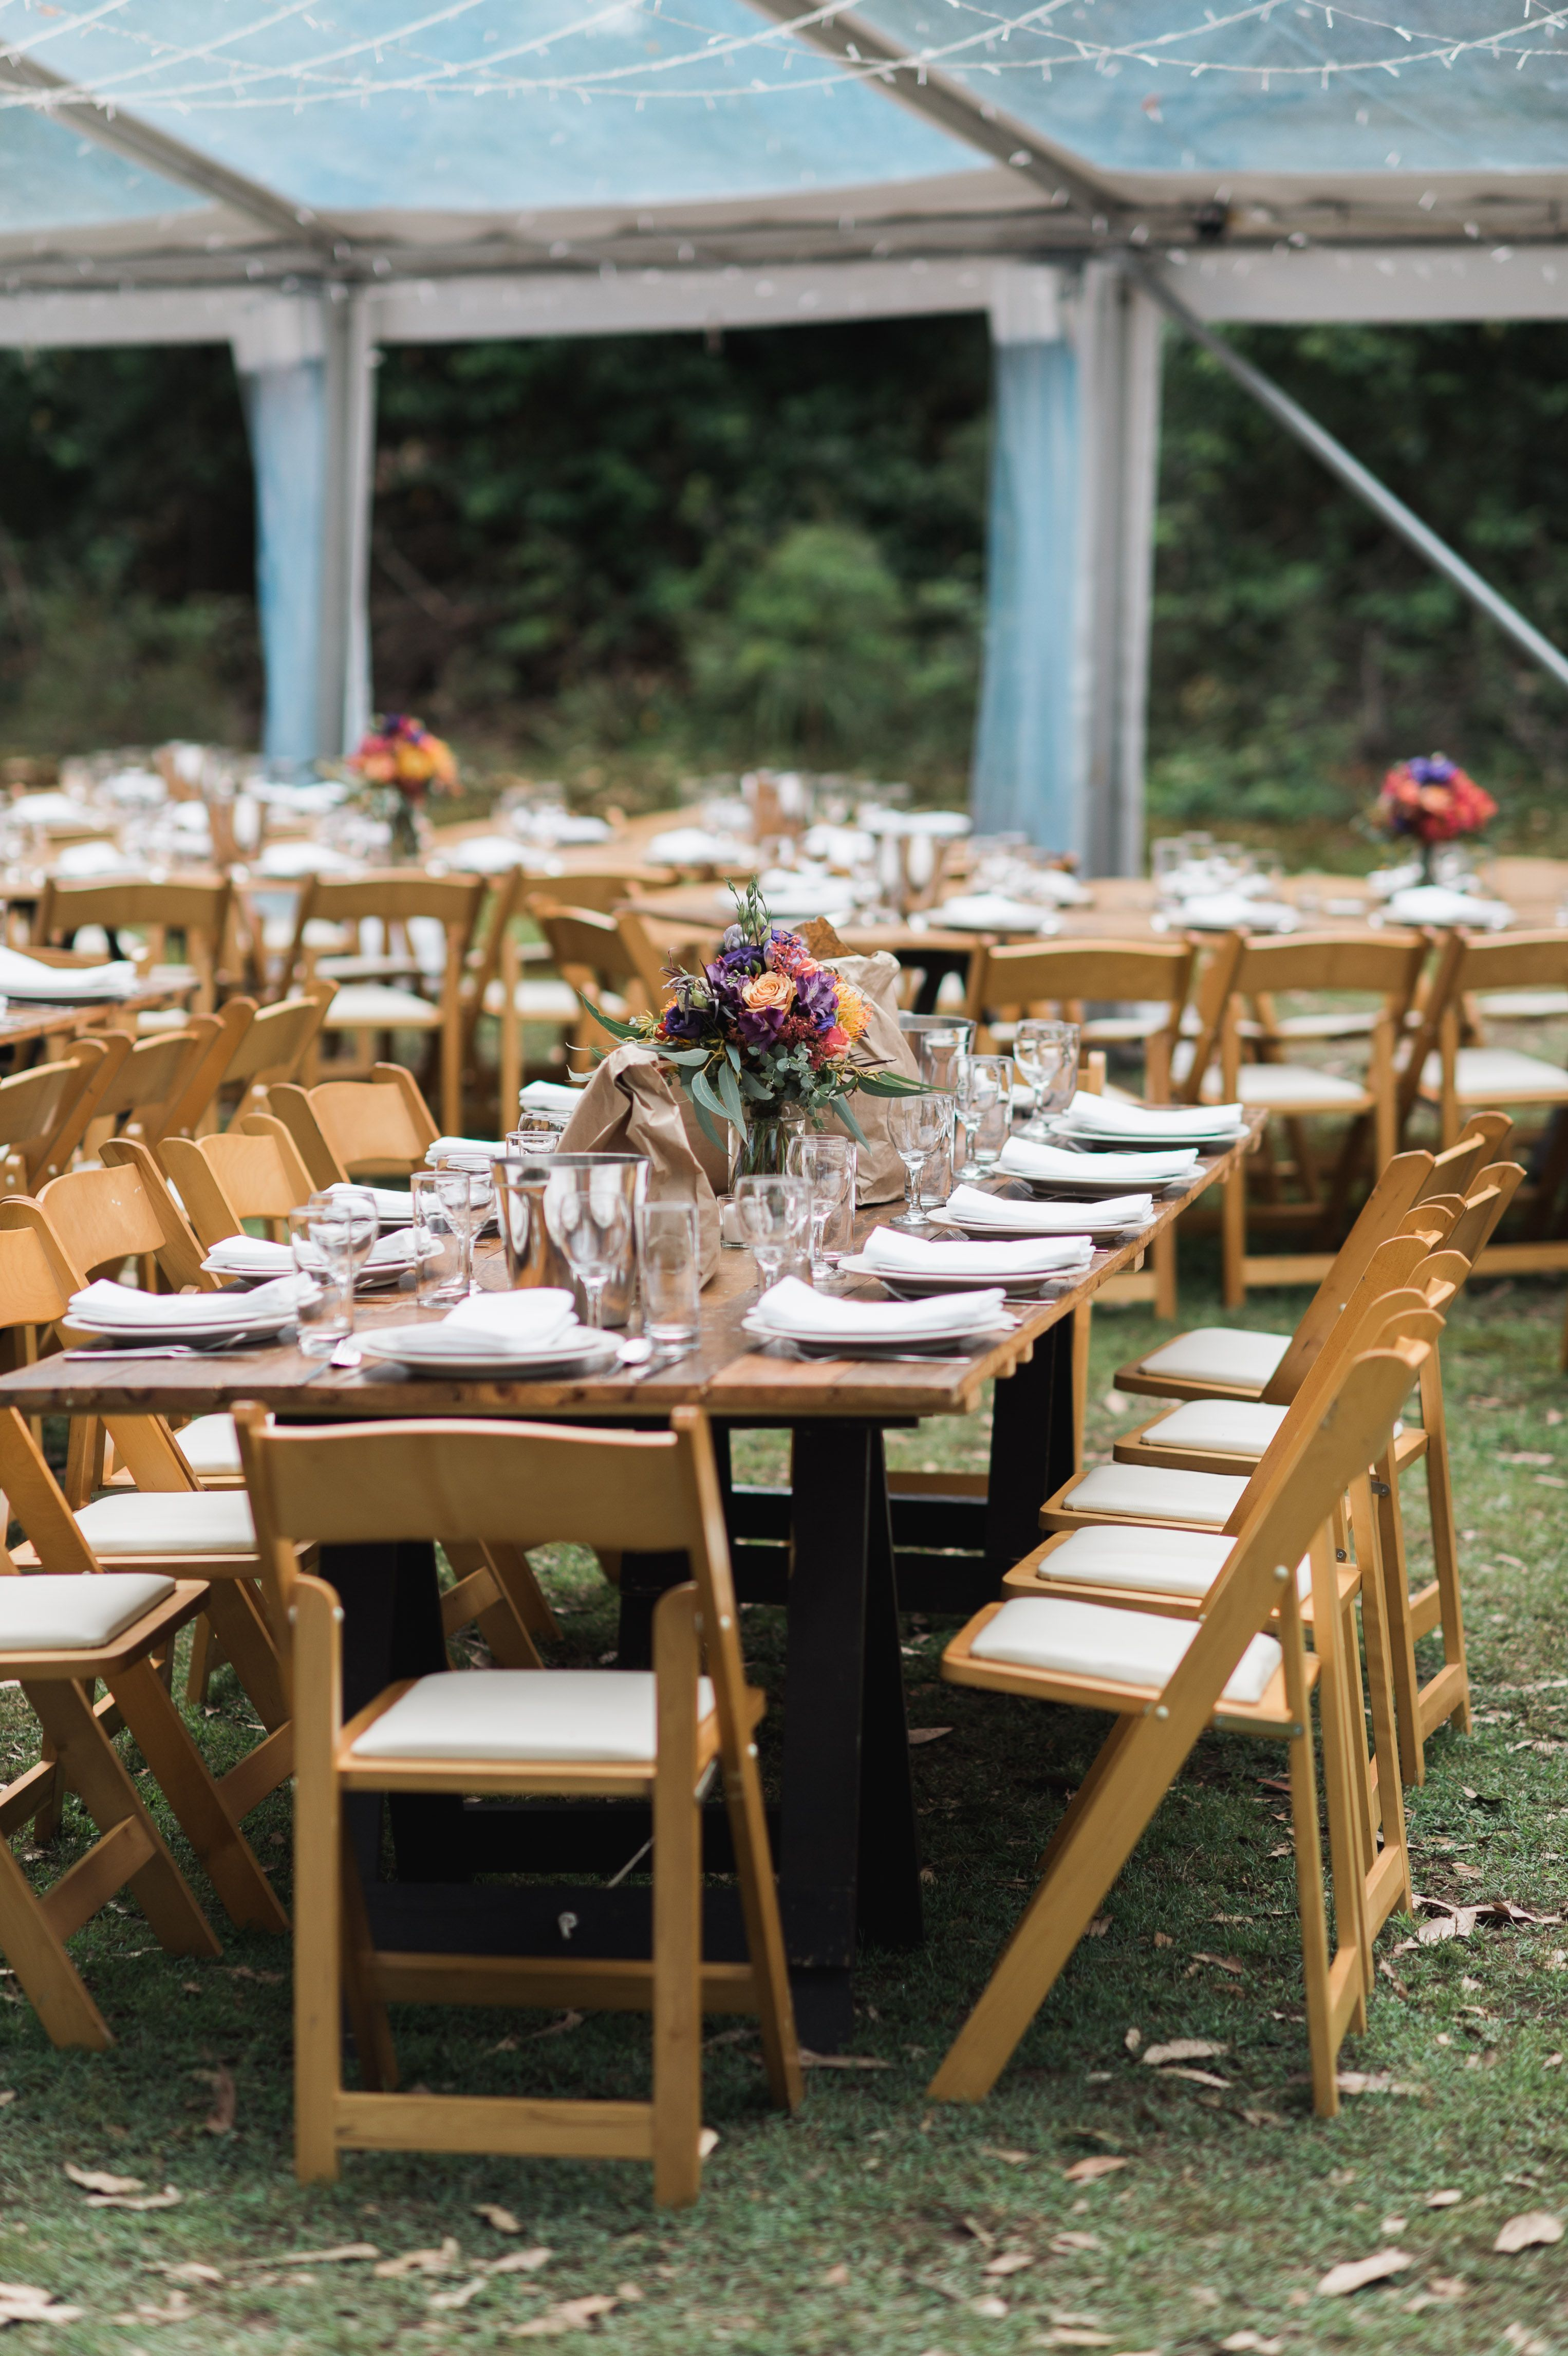 Wooden padded folding chairs clear marquee vintage timber trestle tables